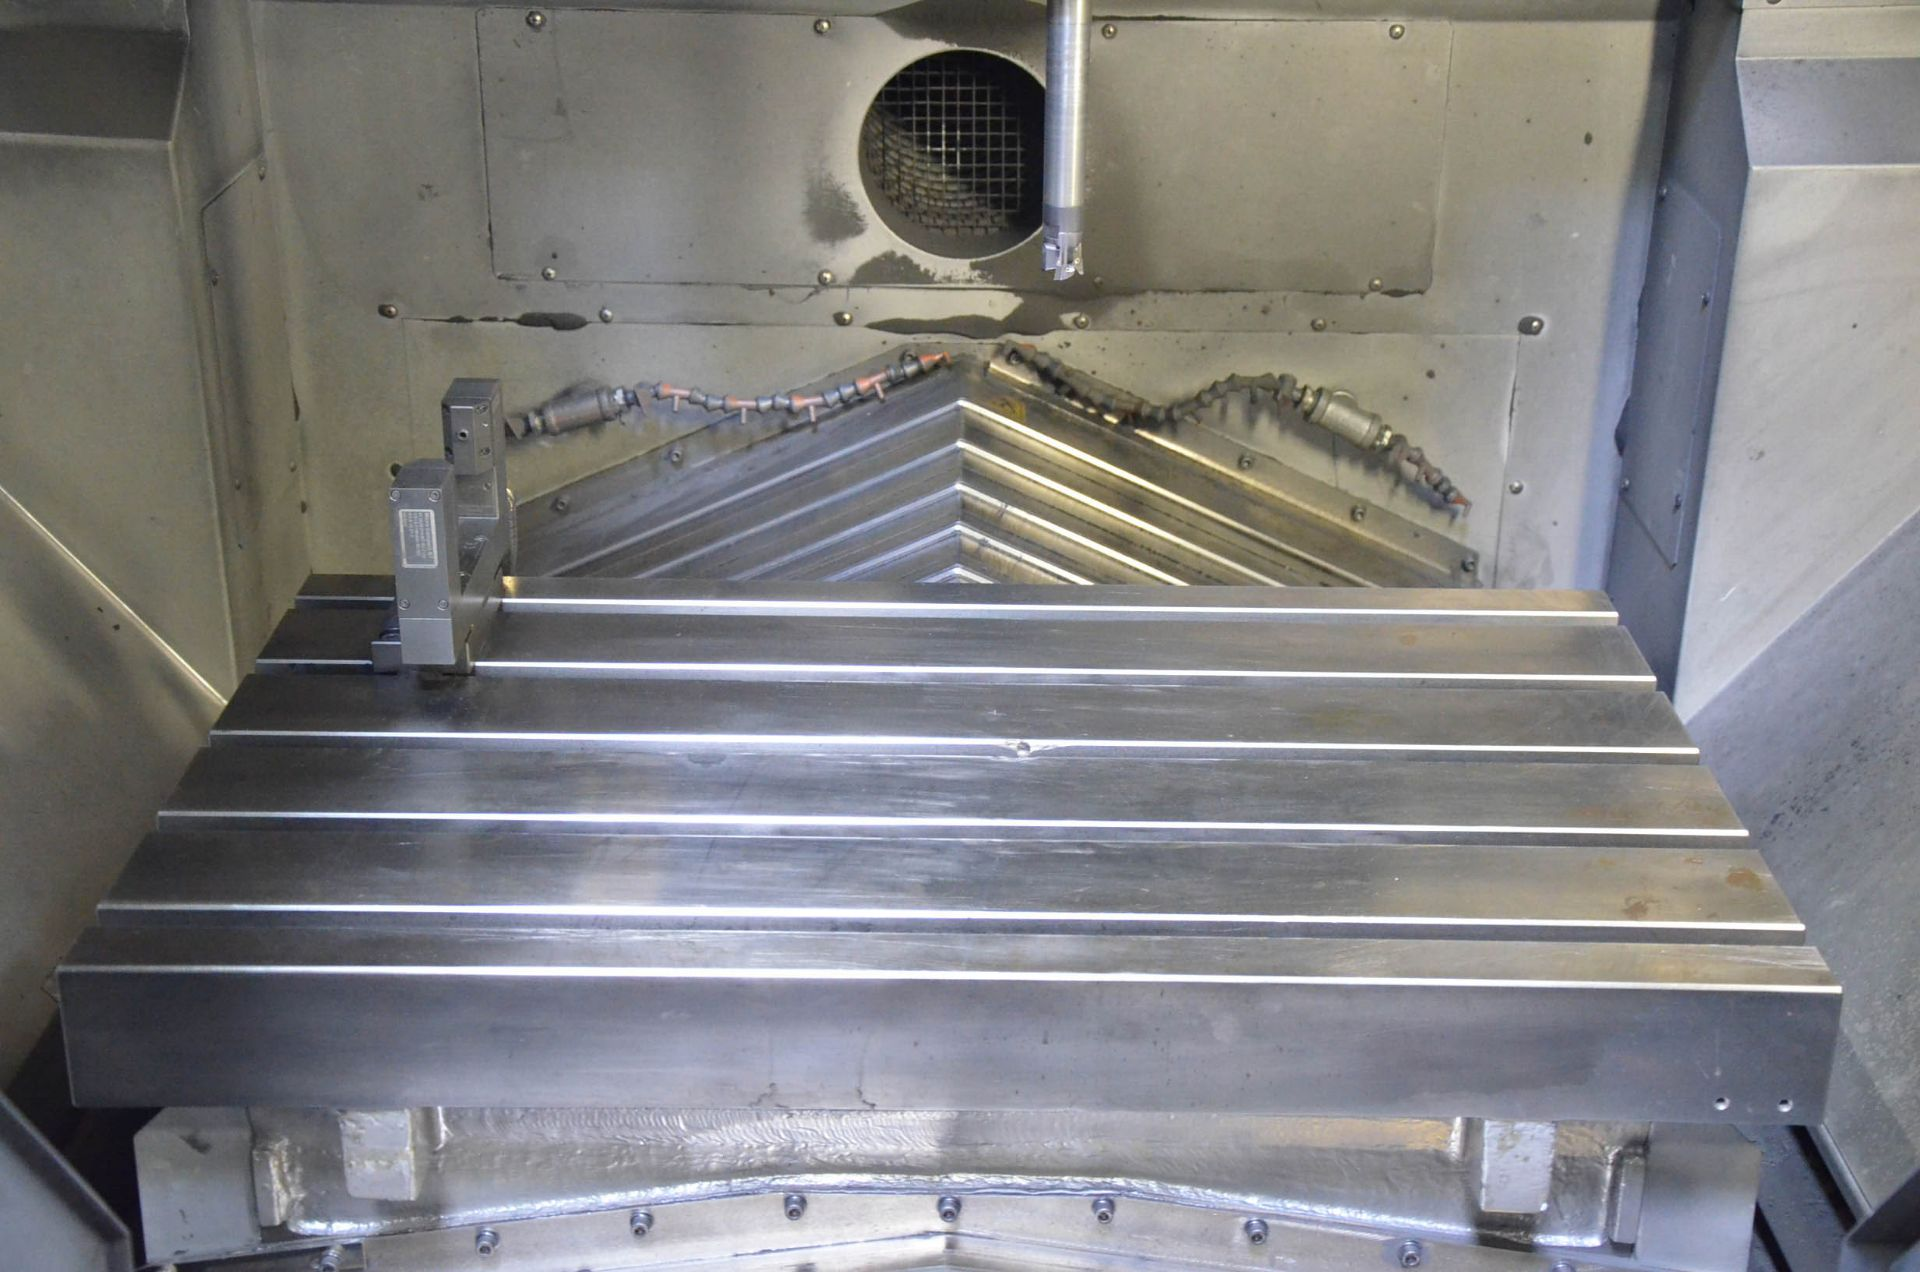 MAKINO (2012) F3 CNC VERTICAL MACHINING CENTER WITH MAKINO PROFESSIONAL 5 TOUCHSCREEN CNC CONTROL, - Image 5 of 9